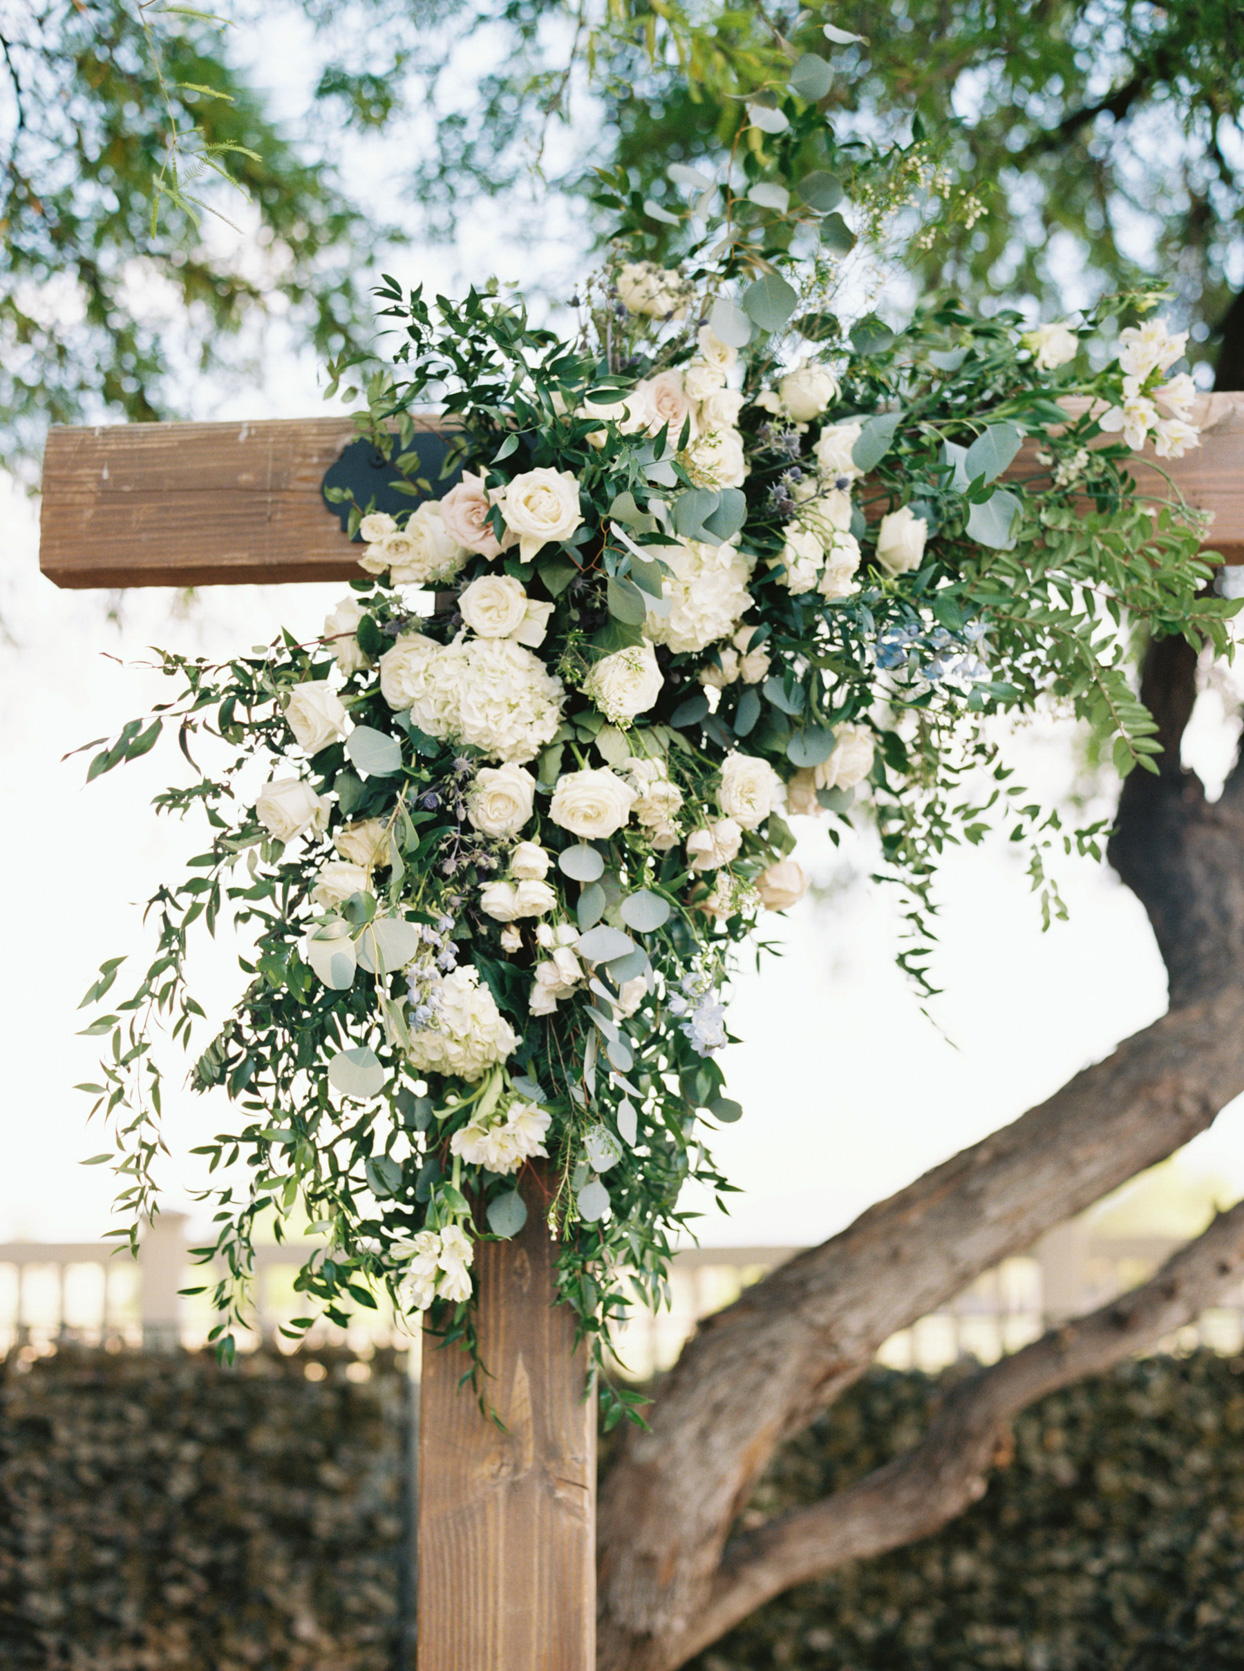 white flowers on the wooden ceremony arch